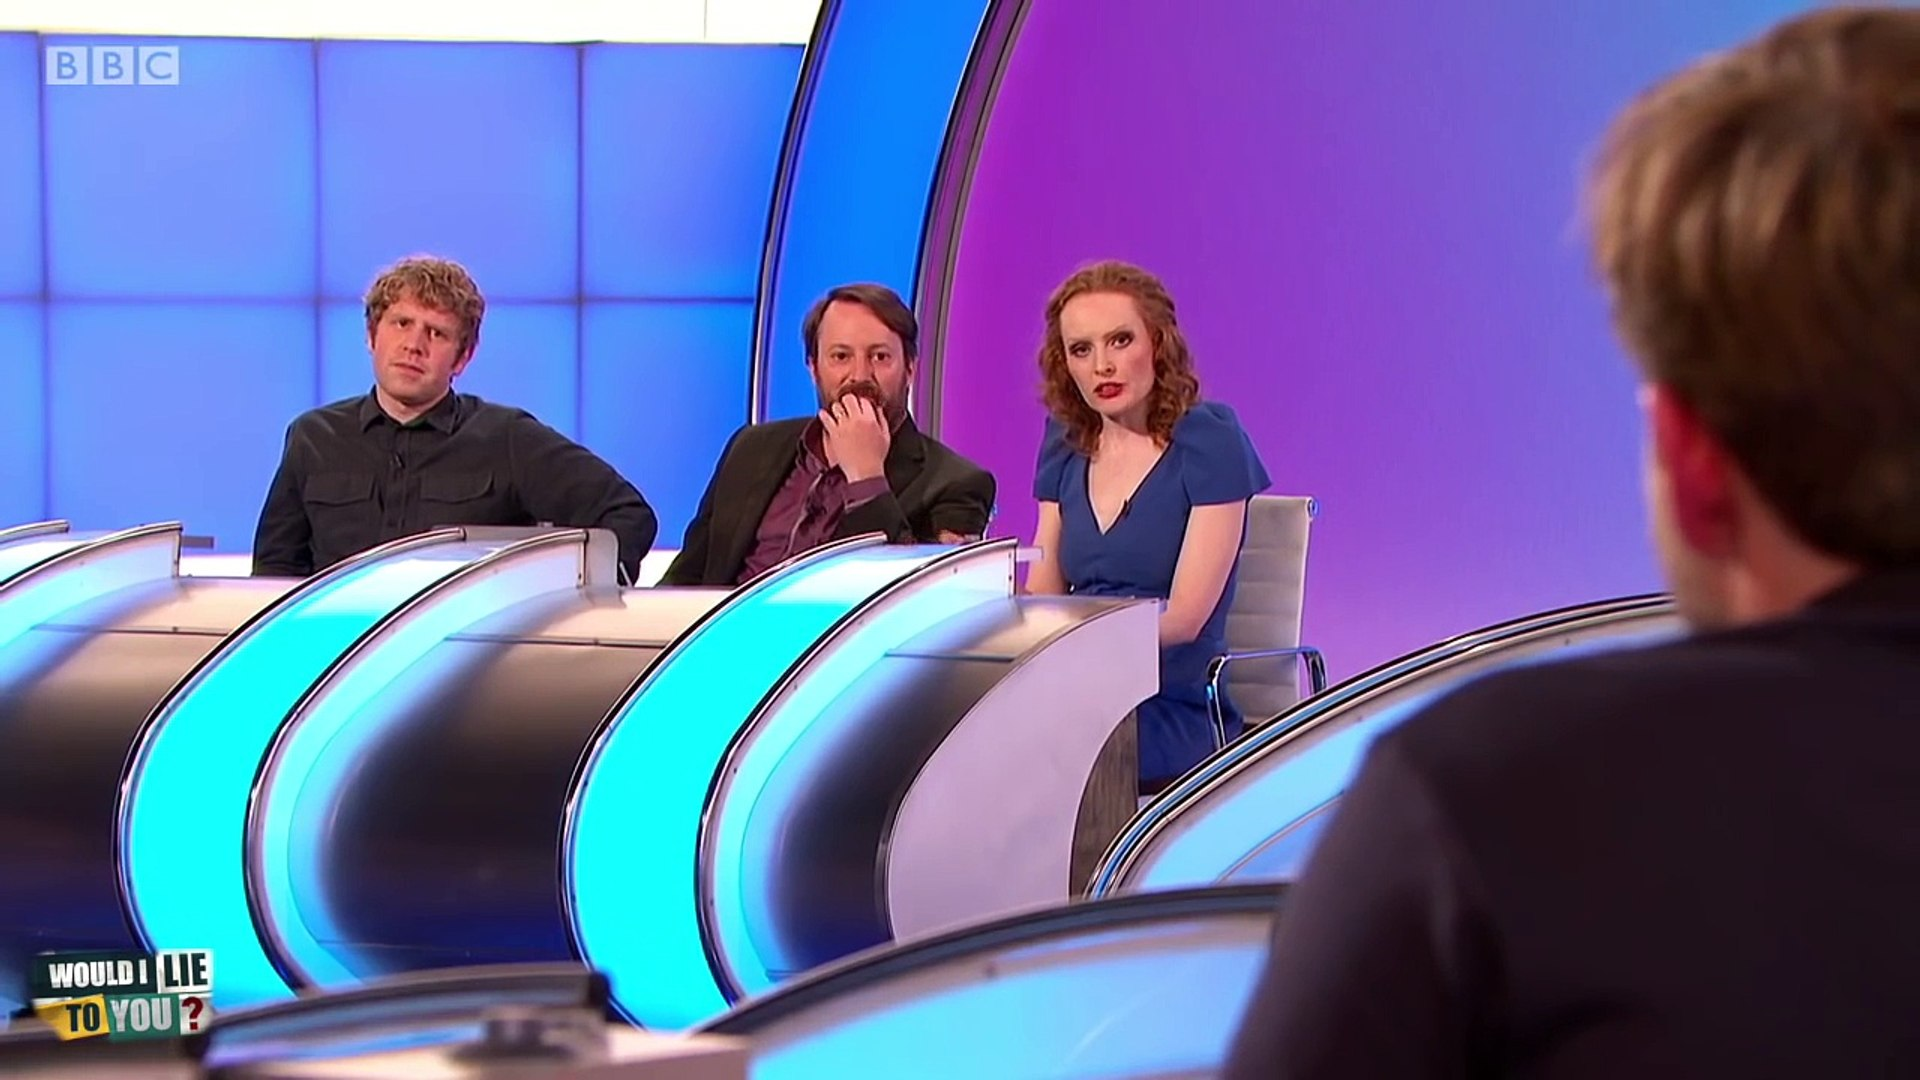 Kevin Bishop and the severed finger Would I Lie to You? [HD][CC]